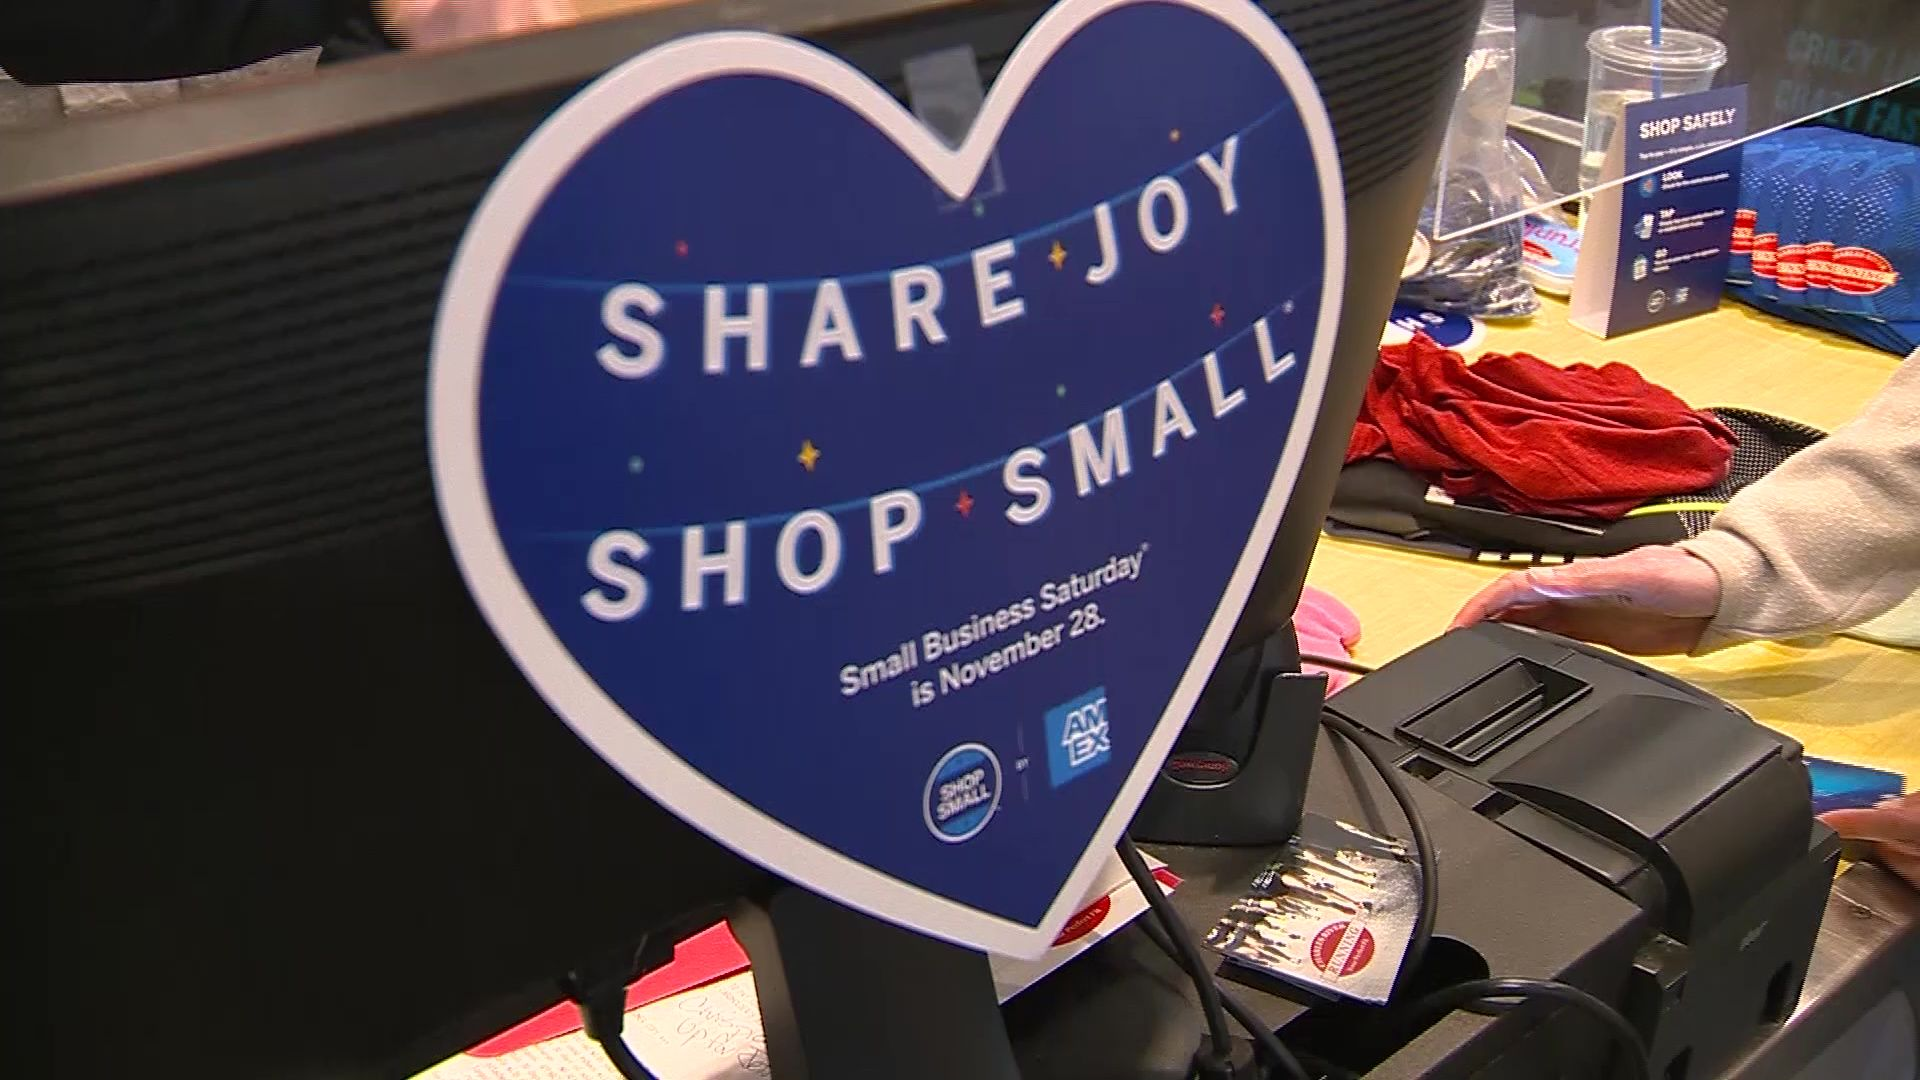 Local businesses hoping for holiday season boost